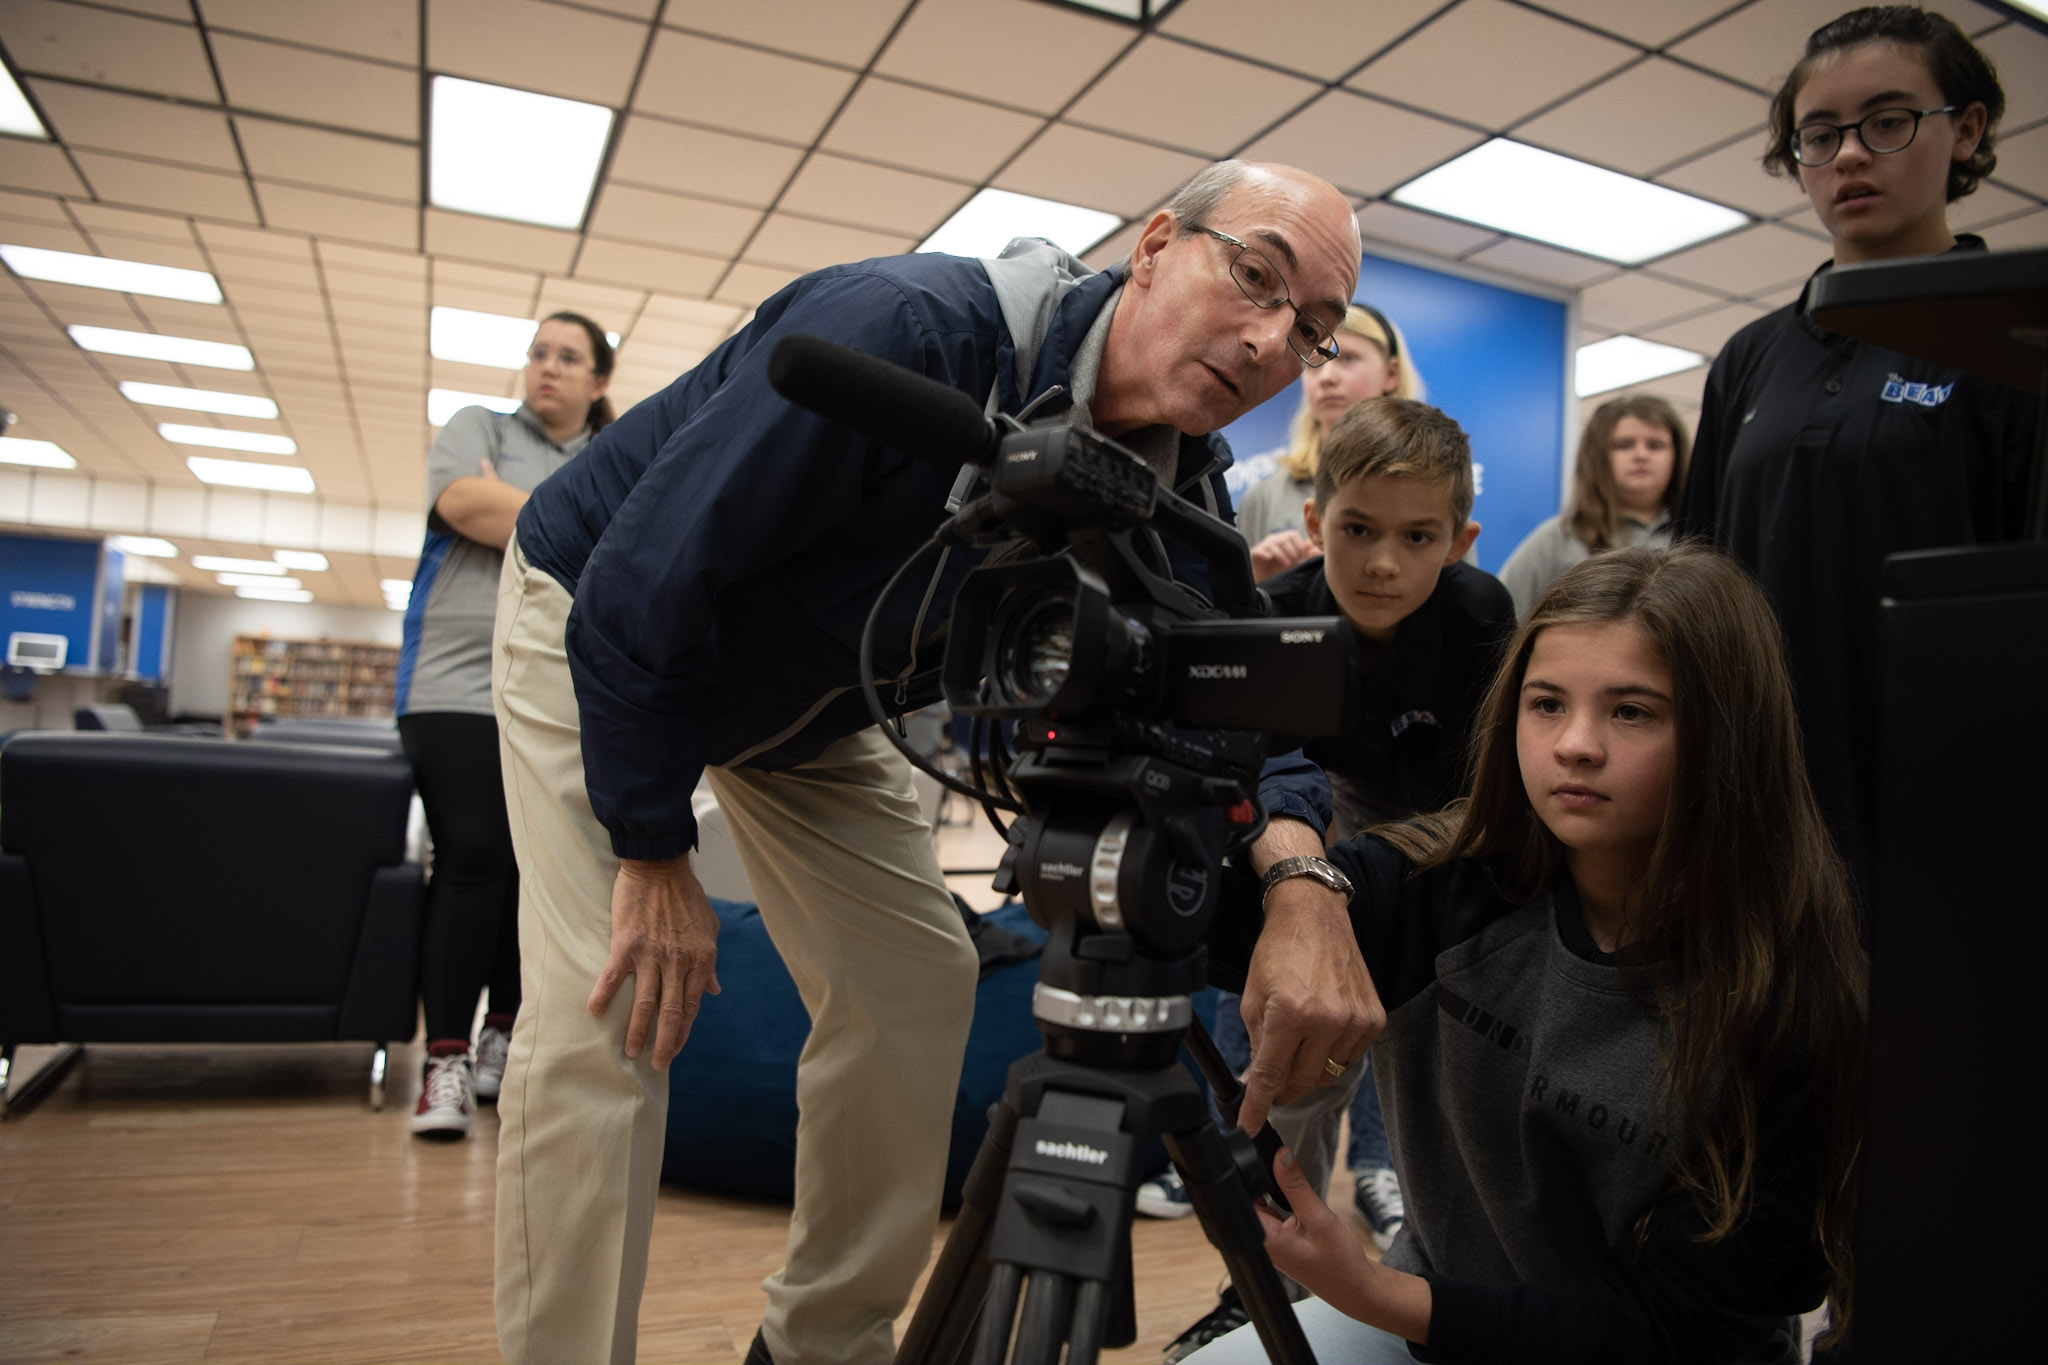 John Wasylko  shows one of The BEAT students how to adjust the height of a tripod.